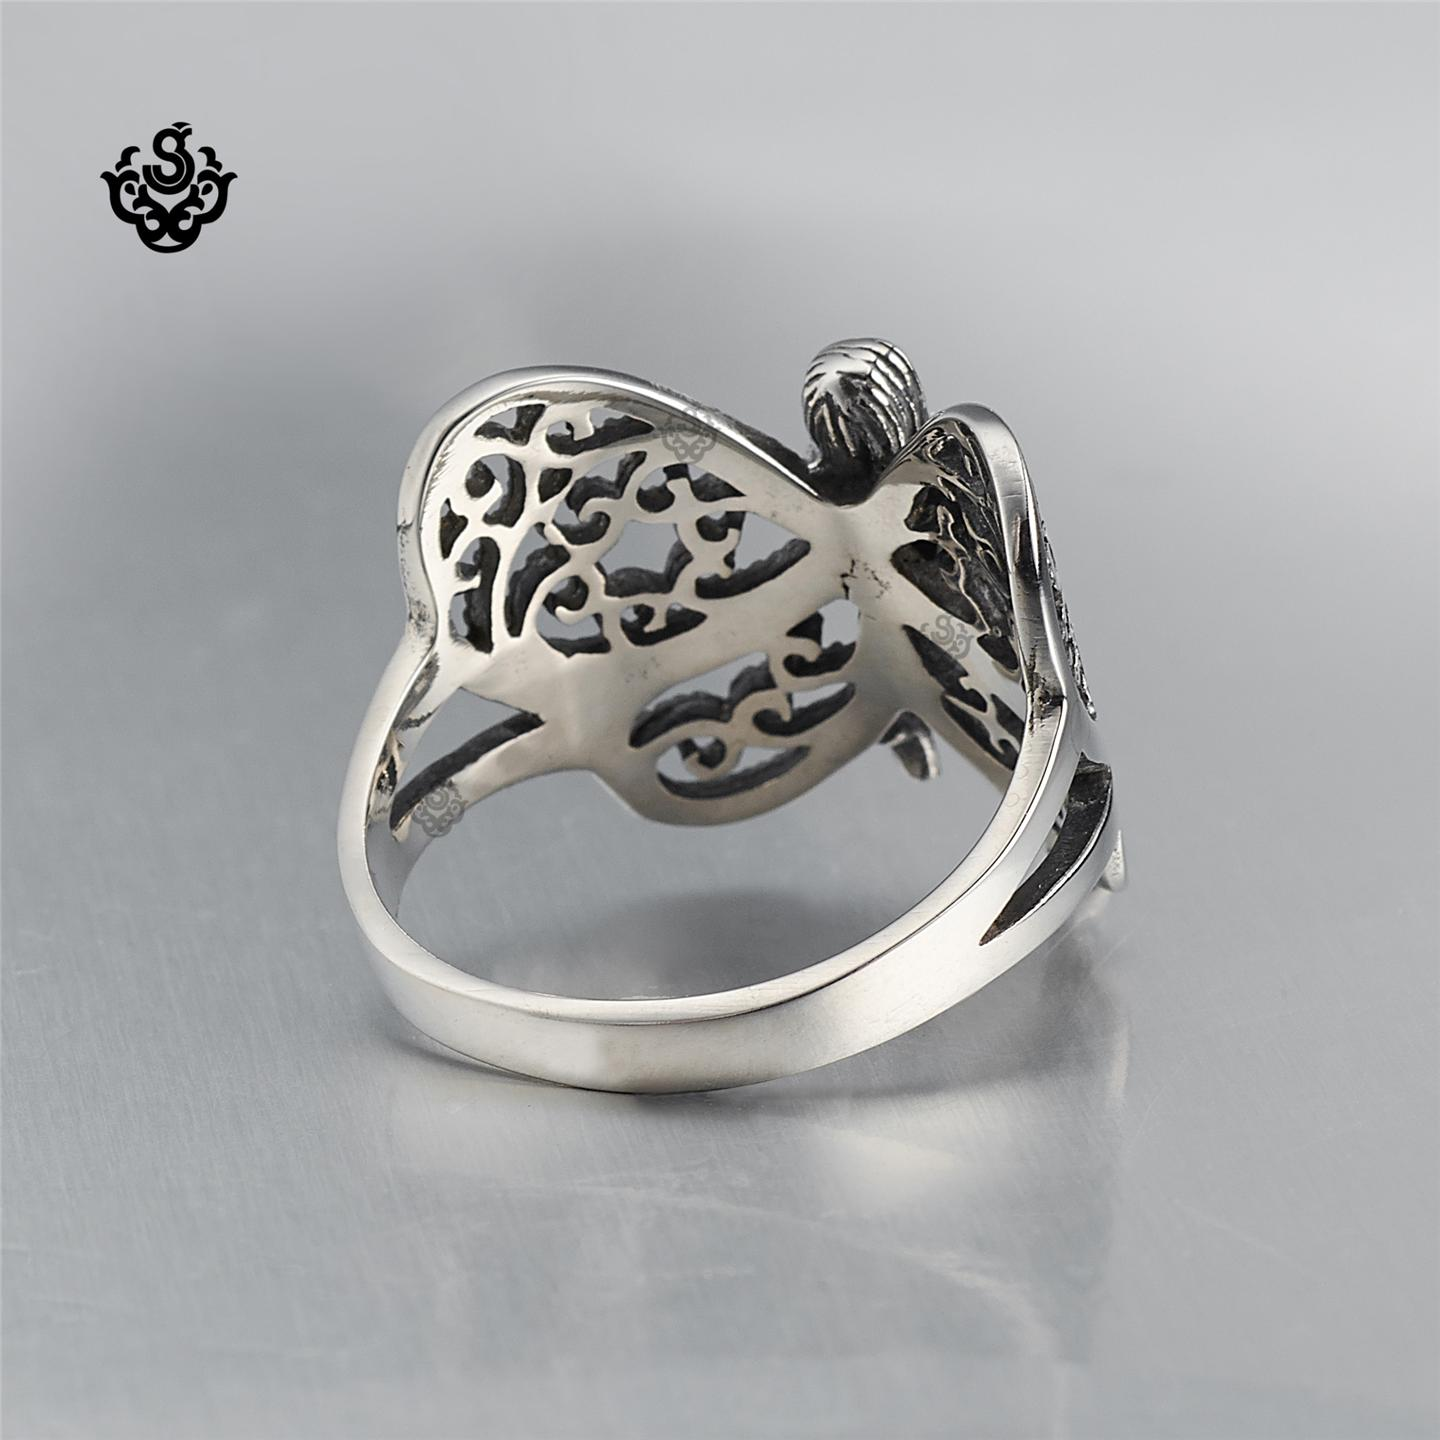 Filigree Ring Bands: Silver Ring Solid Stainless Steel Butterfly Fairy Filigree